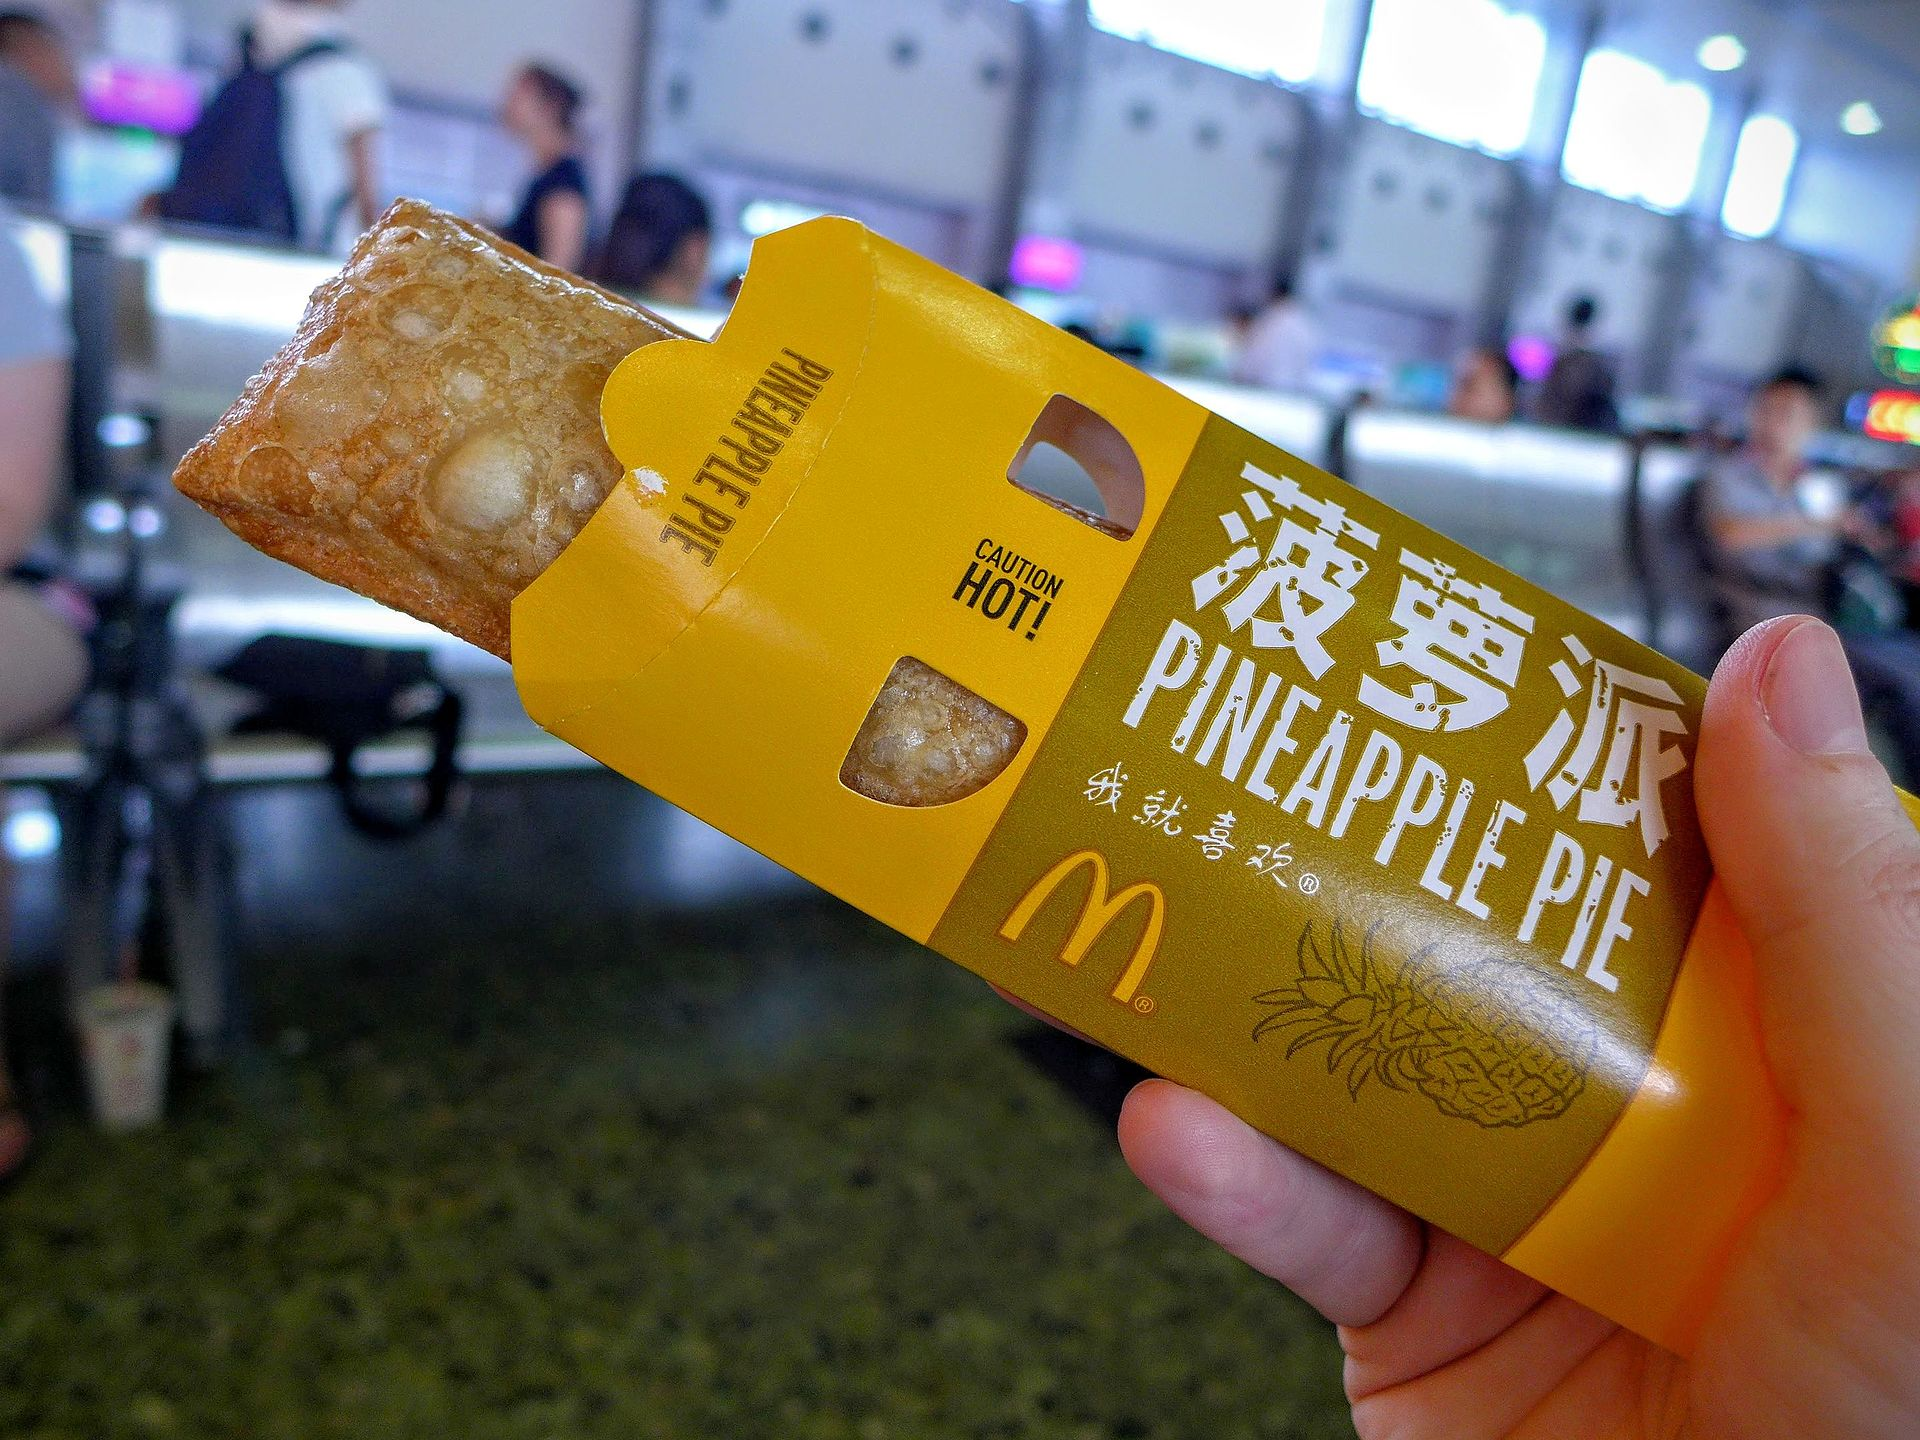 Fried pineapple pie mcdonalds